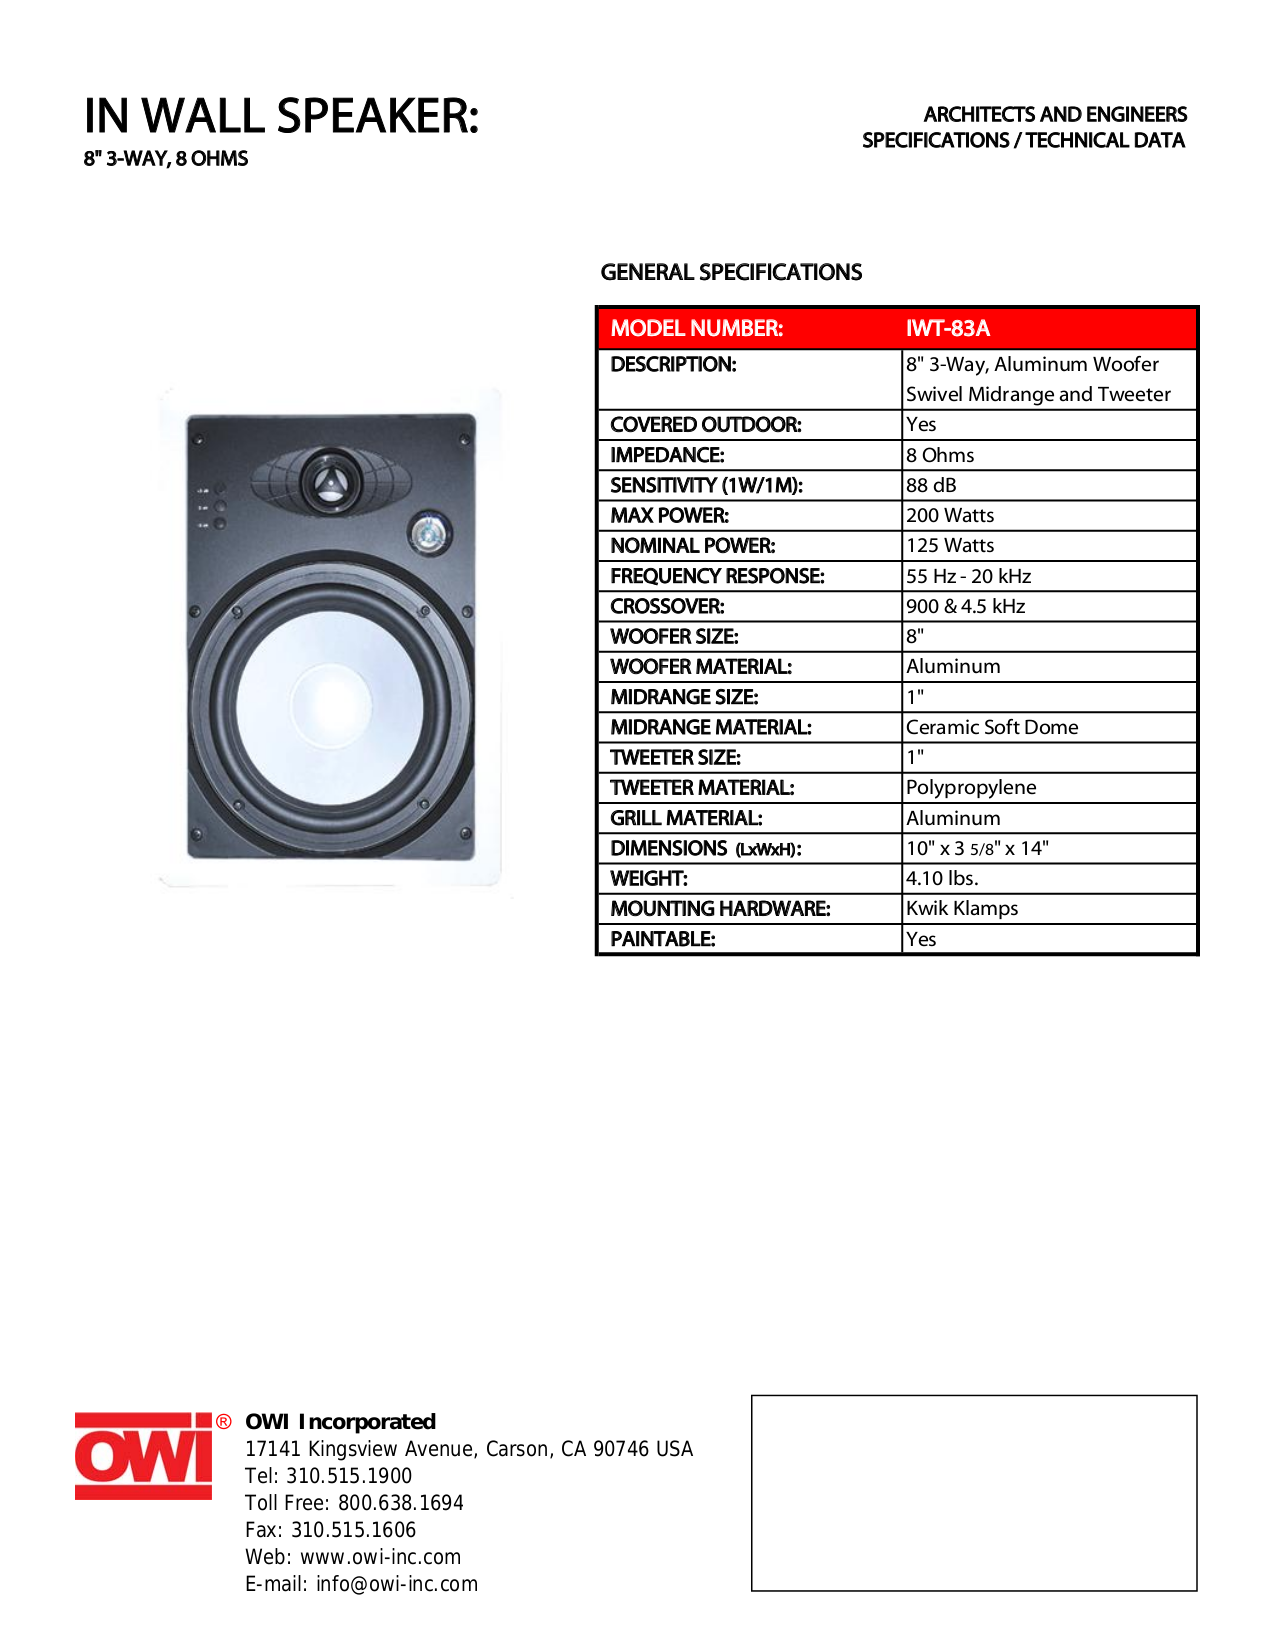 pdf for Owi Speaker IWT-83A manual